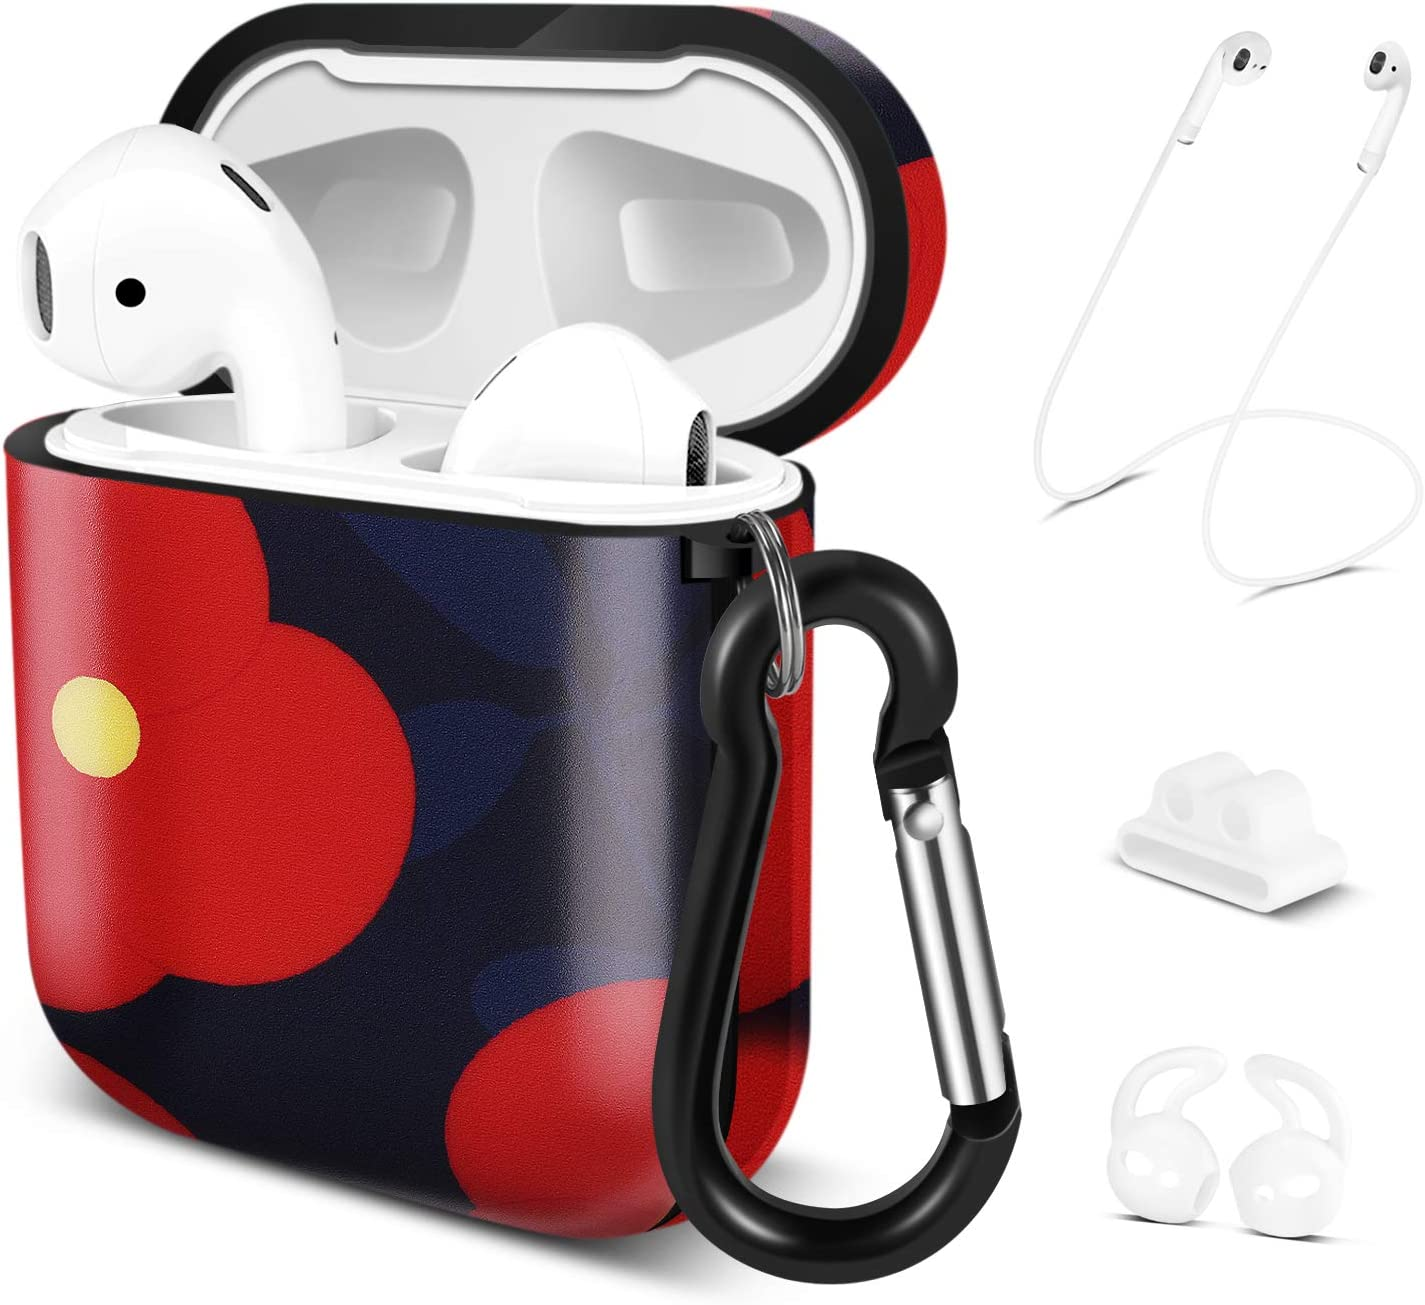 TNP Protective Case Cover Compatible for Apple AirPods 2/1 (Red Flower), Shock Resistant Cute Skin 5-in-1 Accessories Kit w/Carabiner Keychain, Airpods Strap, Ear Hooks, Watch Band Holder